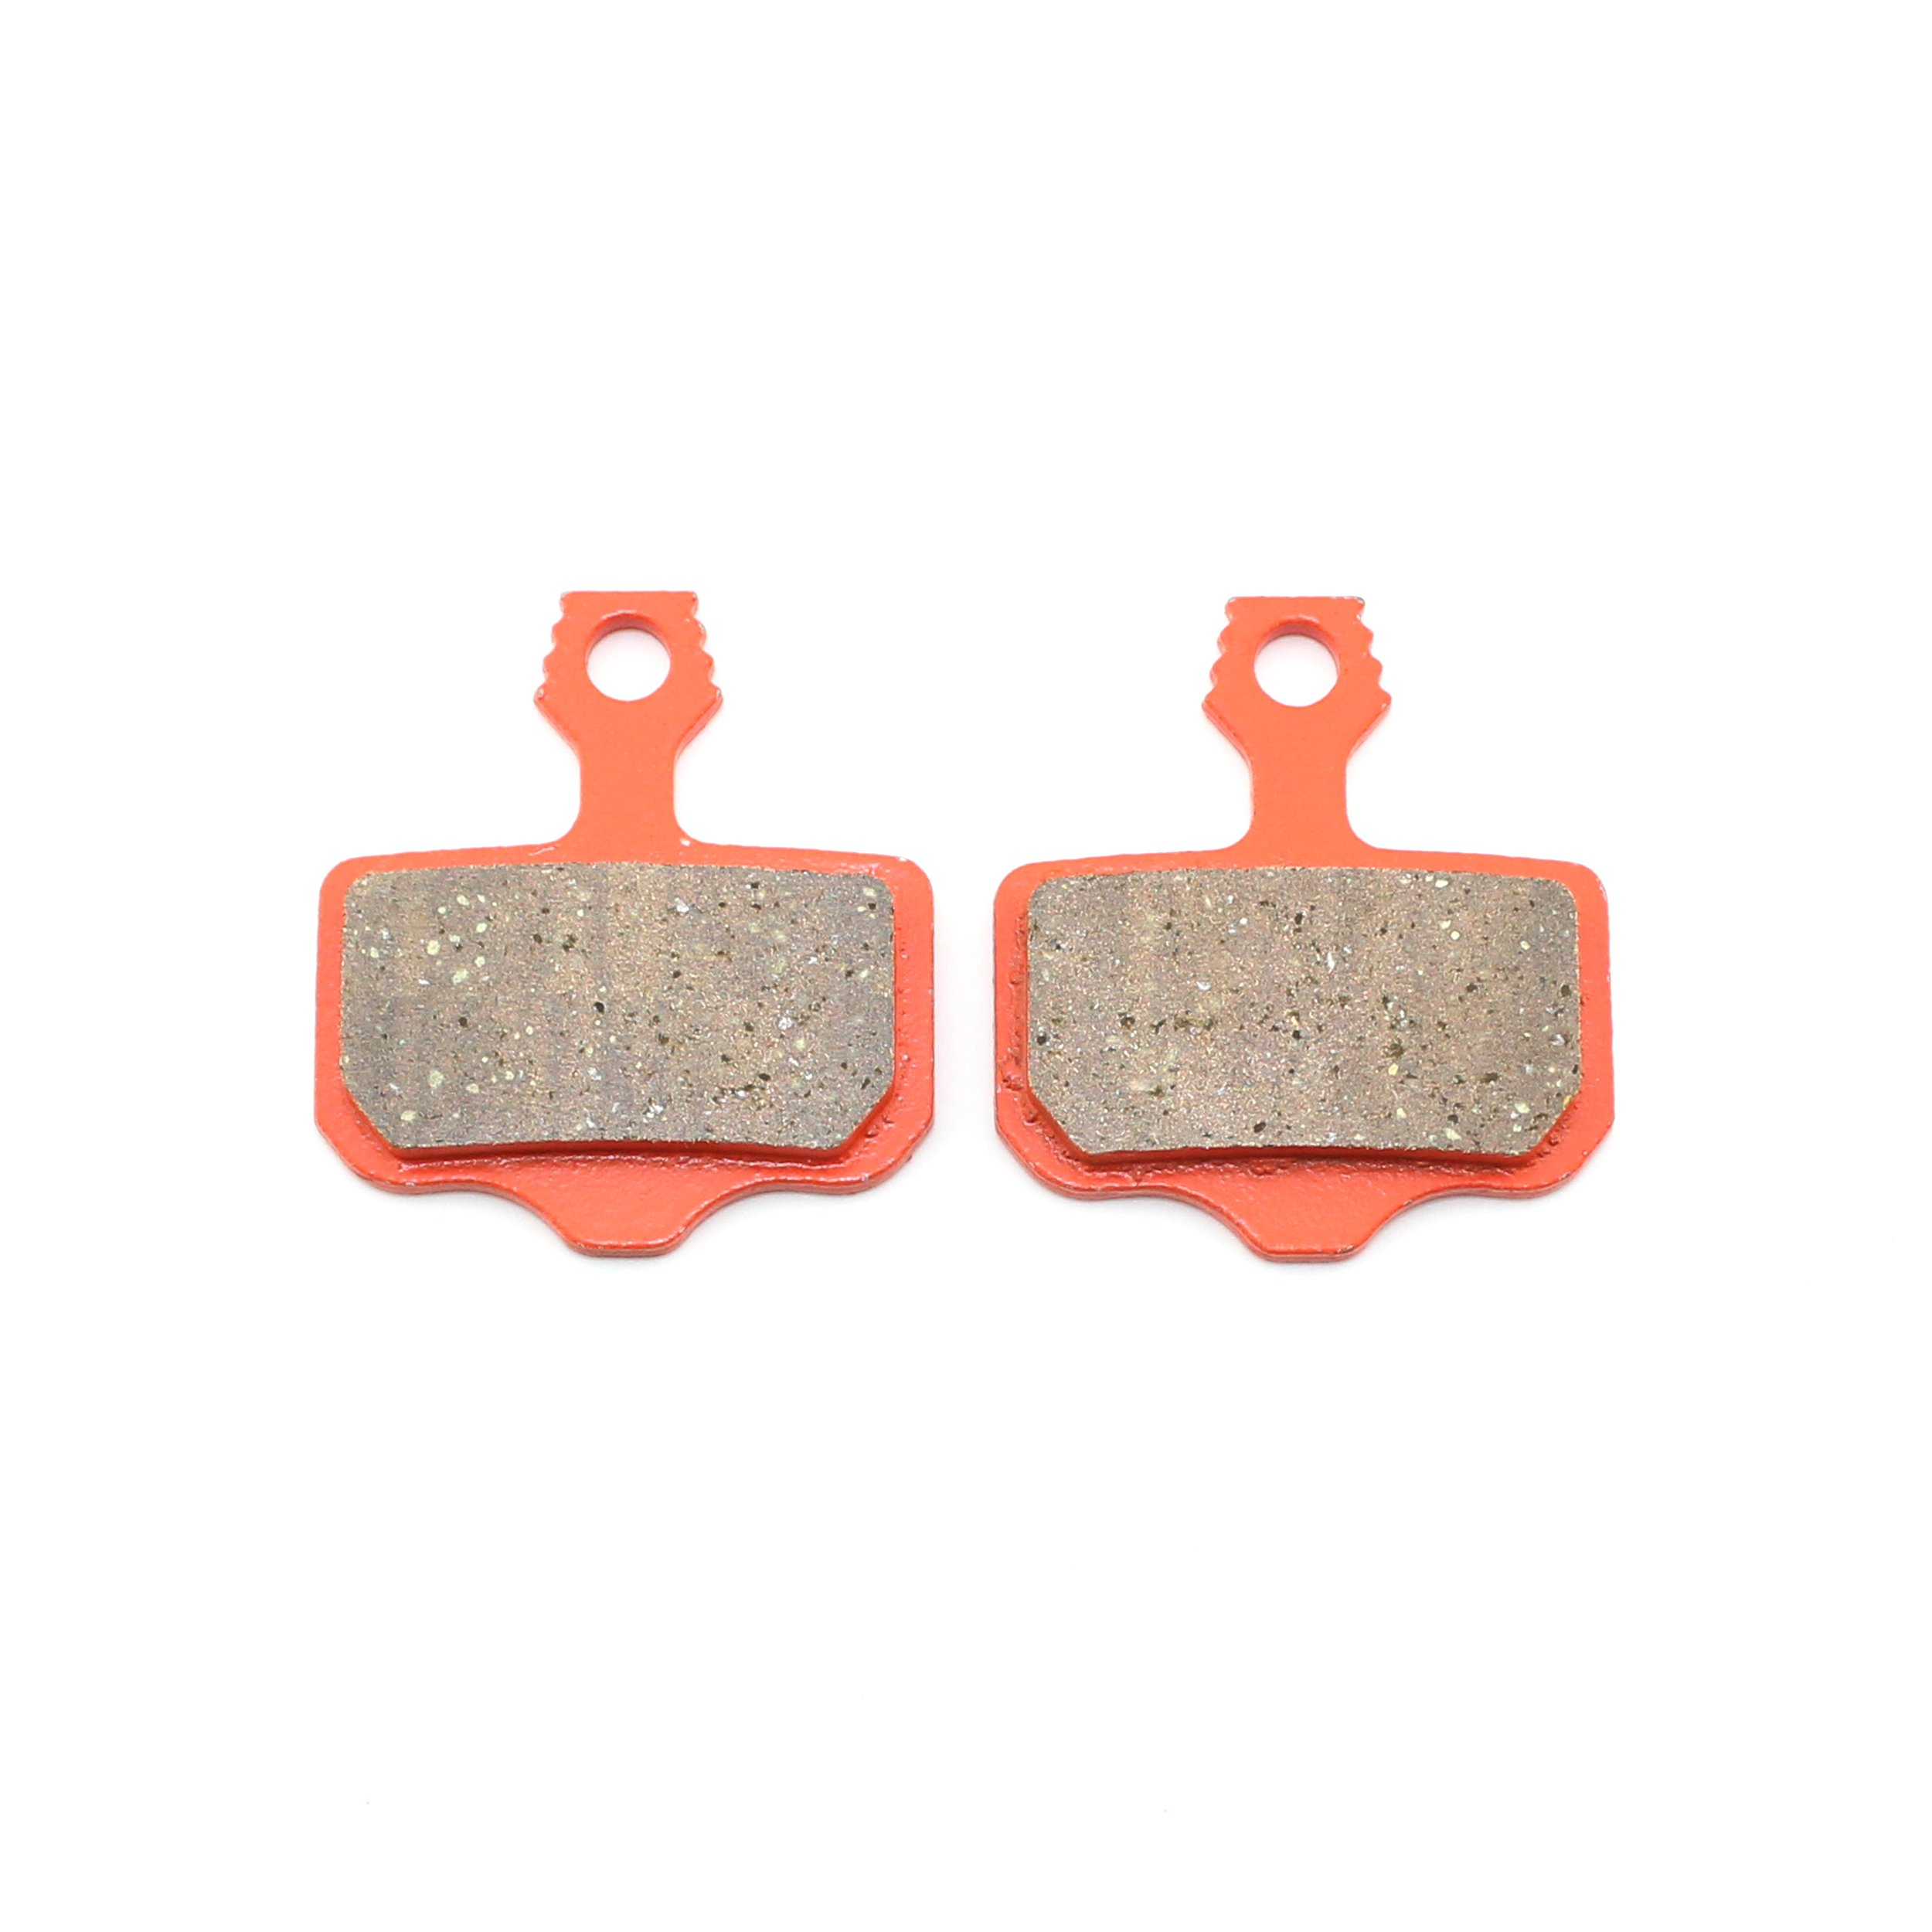 ODIER Bike Brake Pads for Avid Disc Brake Avid Elixir E1 E3 E5 E7 E9 CR ER XO XX Stronger Braking Power Less Noise (F-Avid-Metal) by ODIER